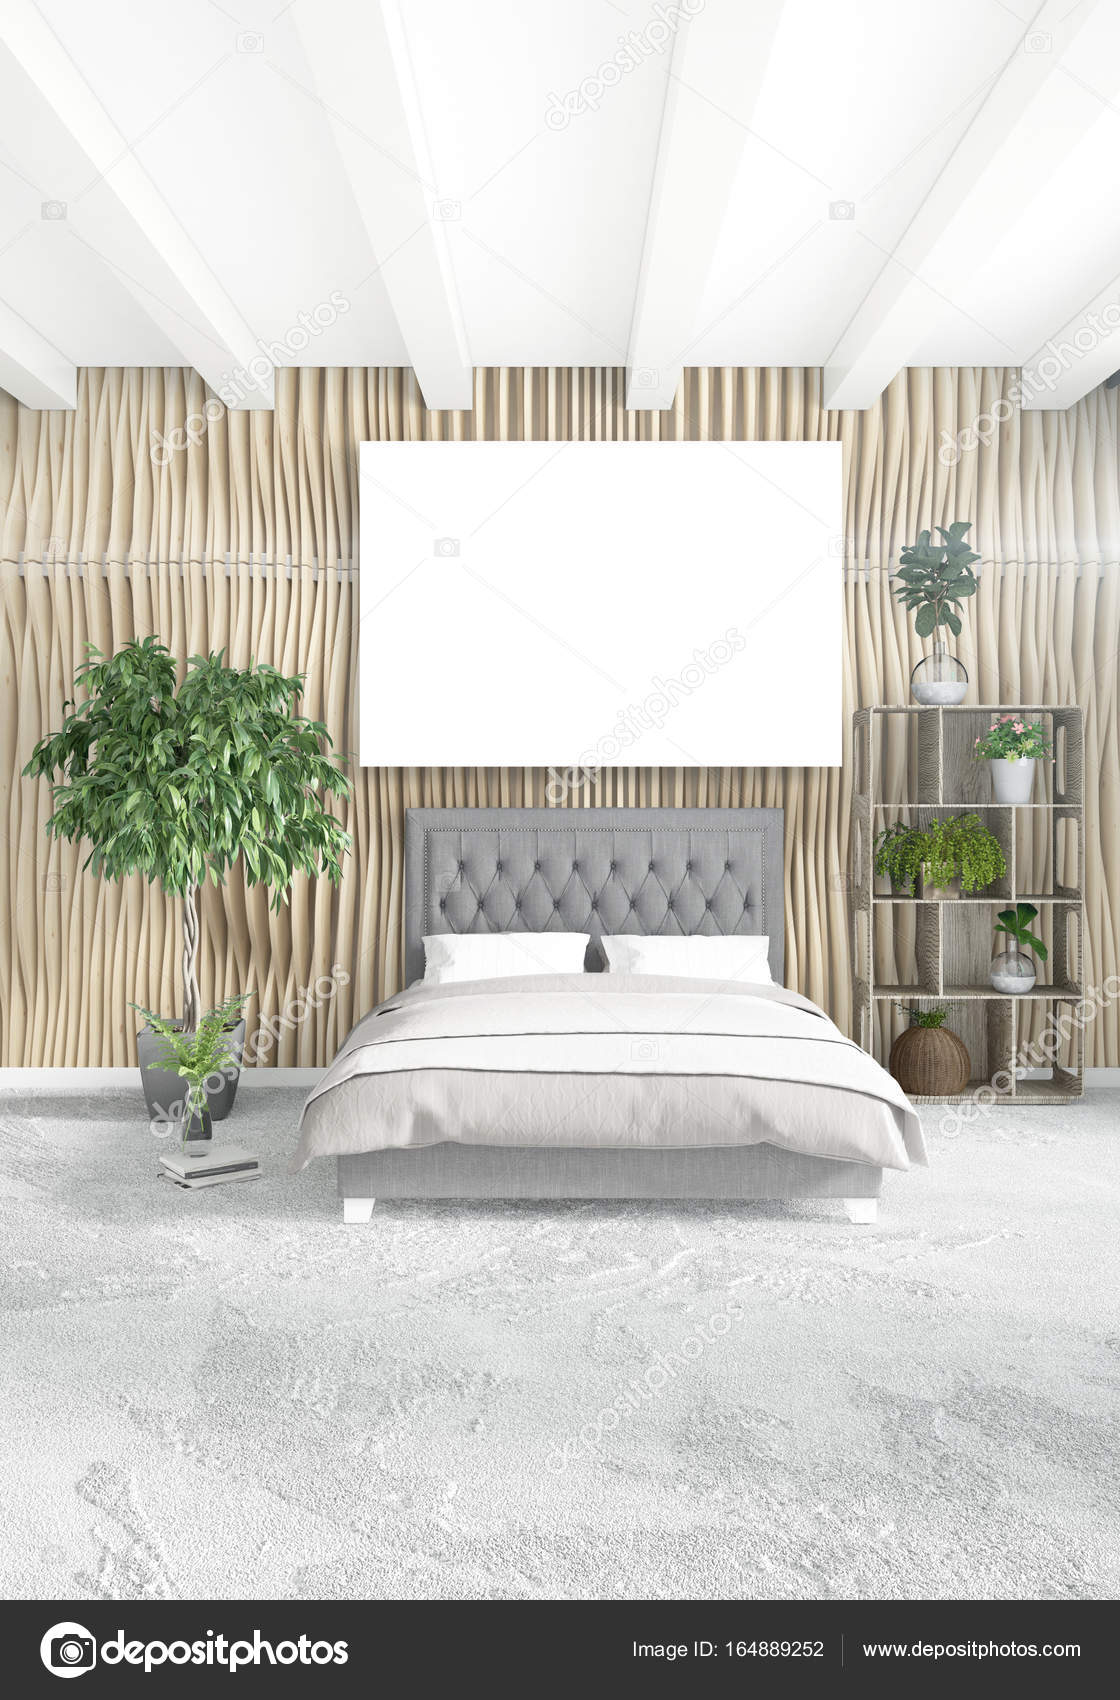 Vertical modern interior bedroom or living room with eclectic wall ...